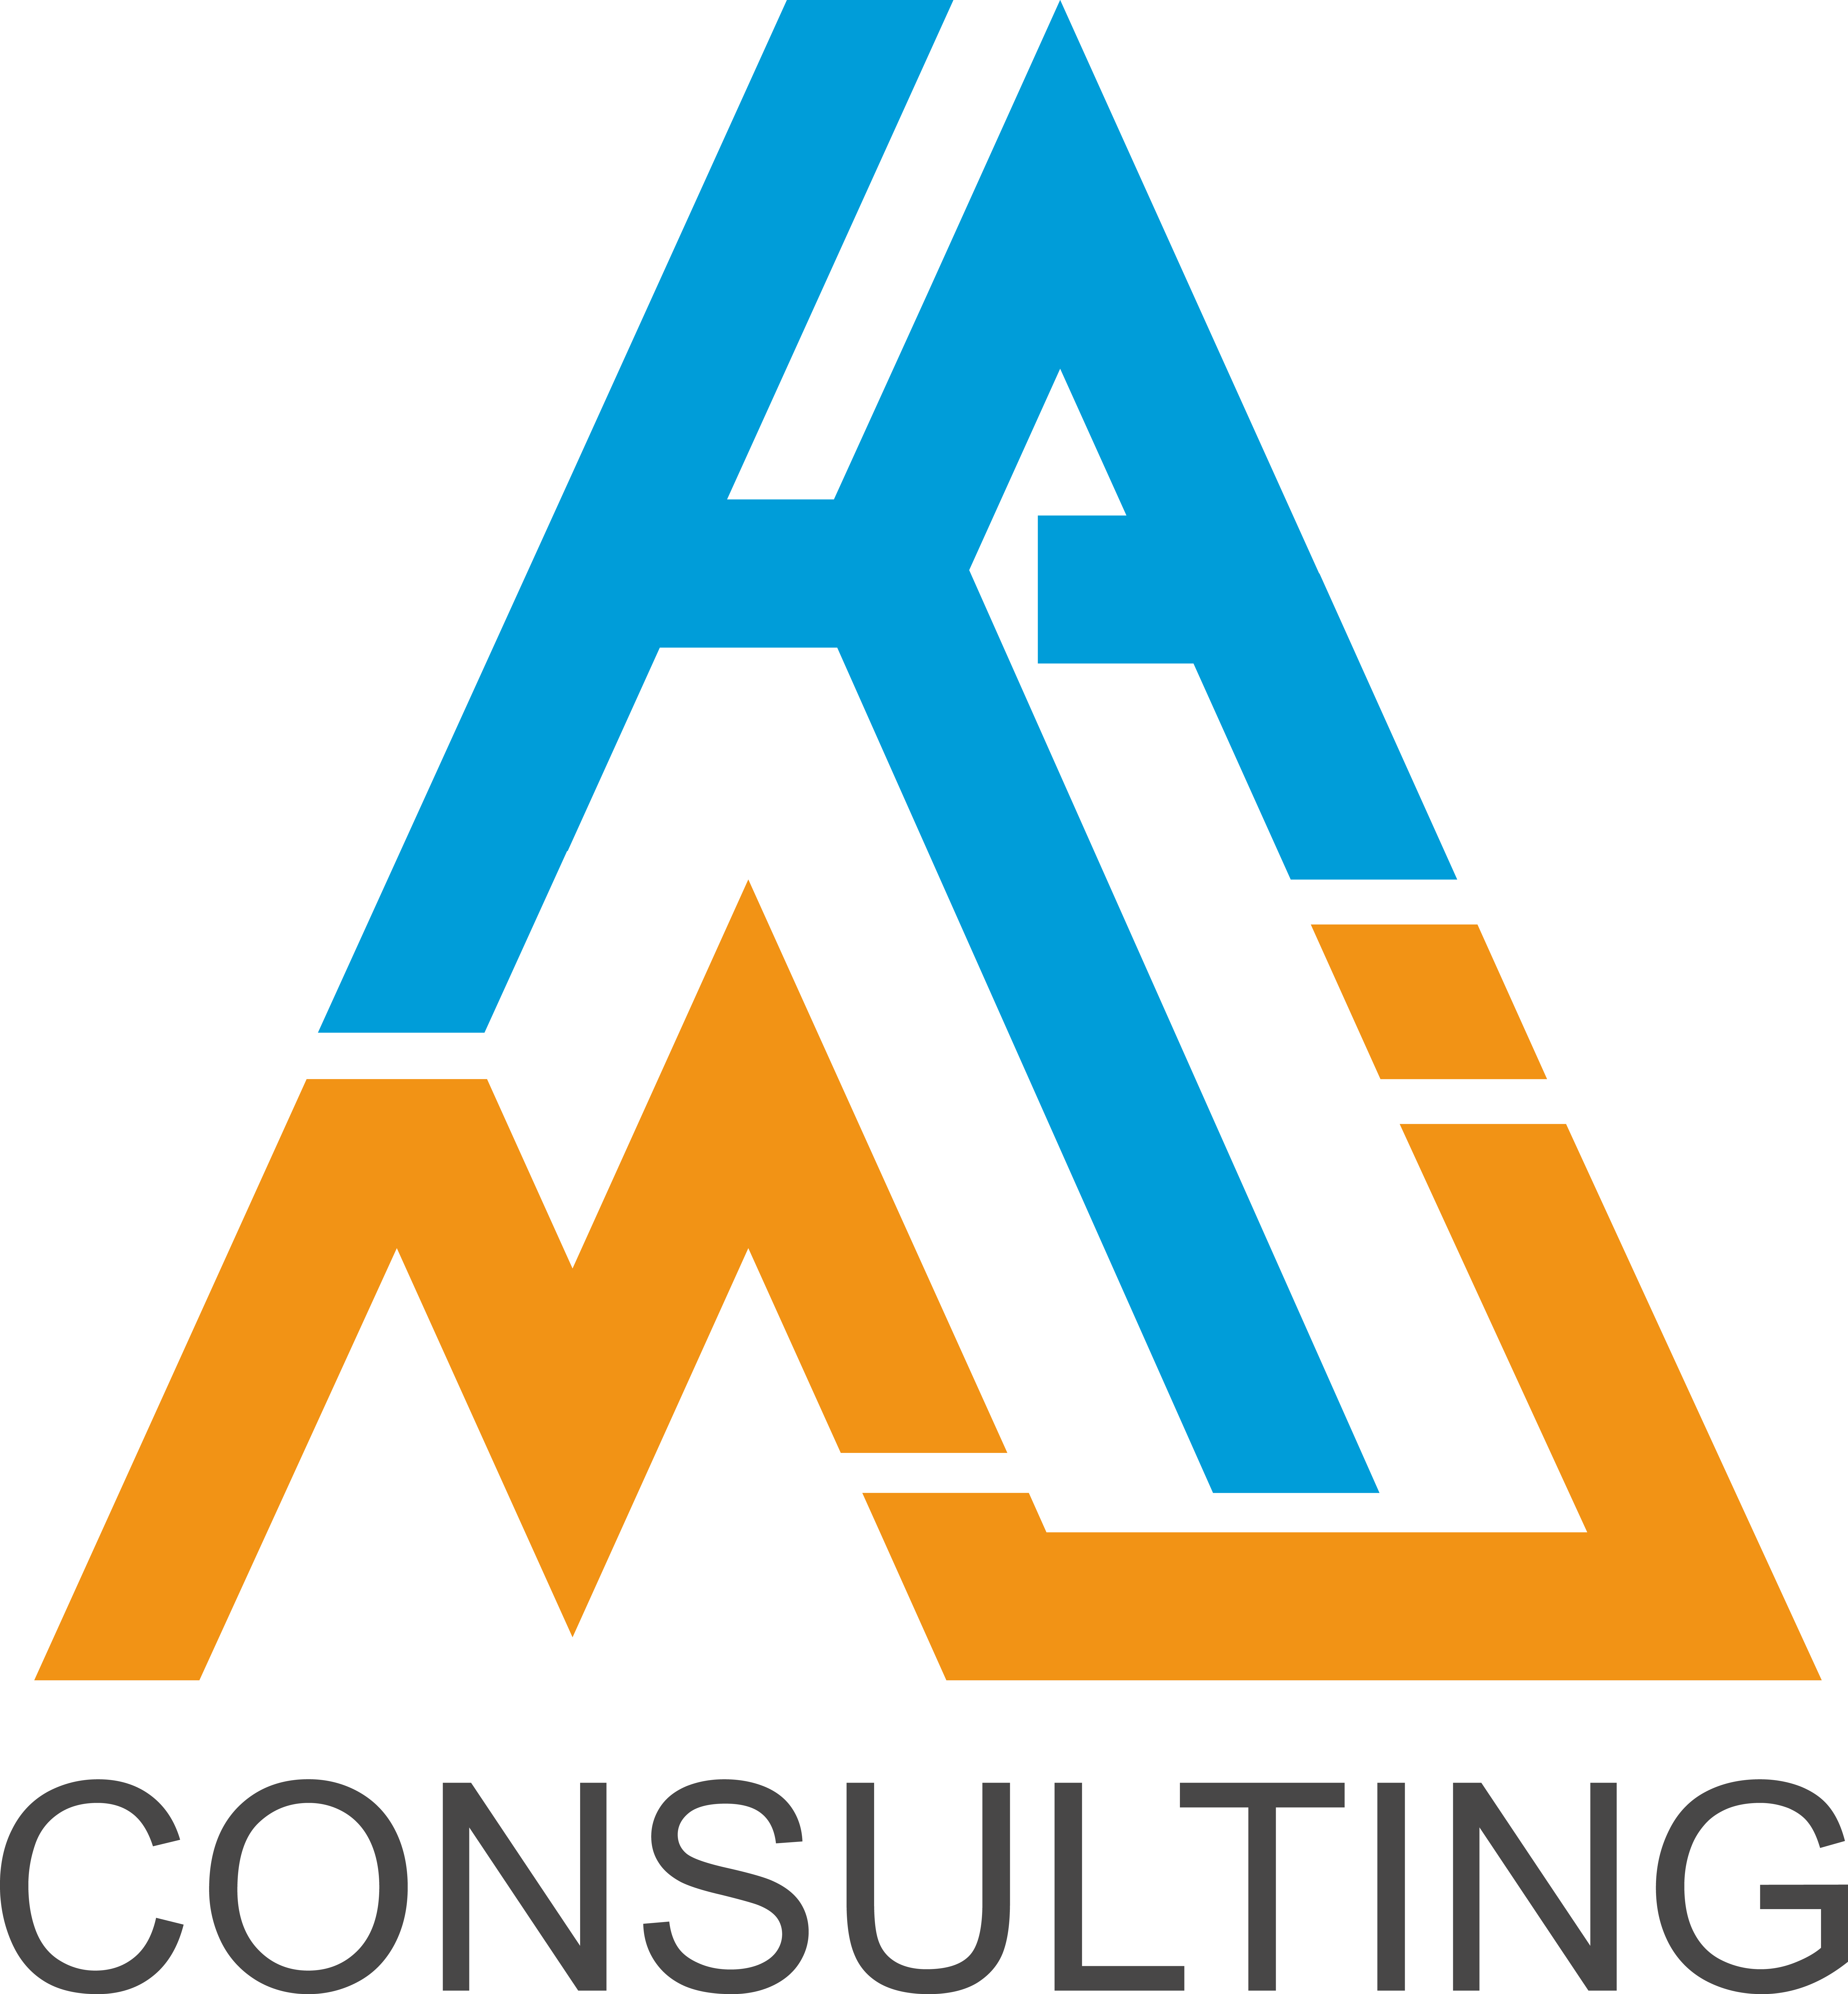 KAMJ CONSULTING